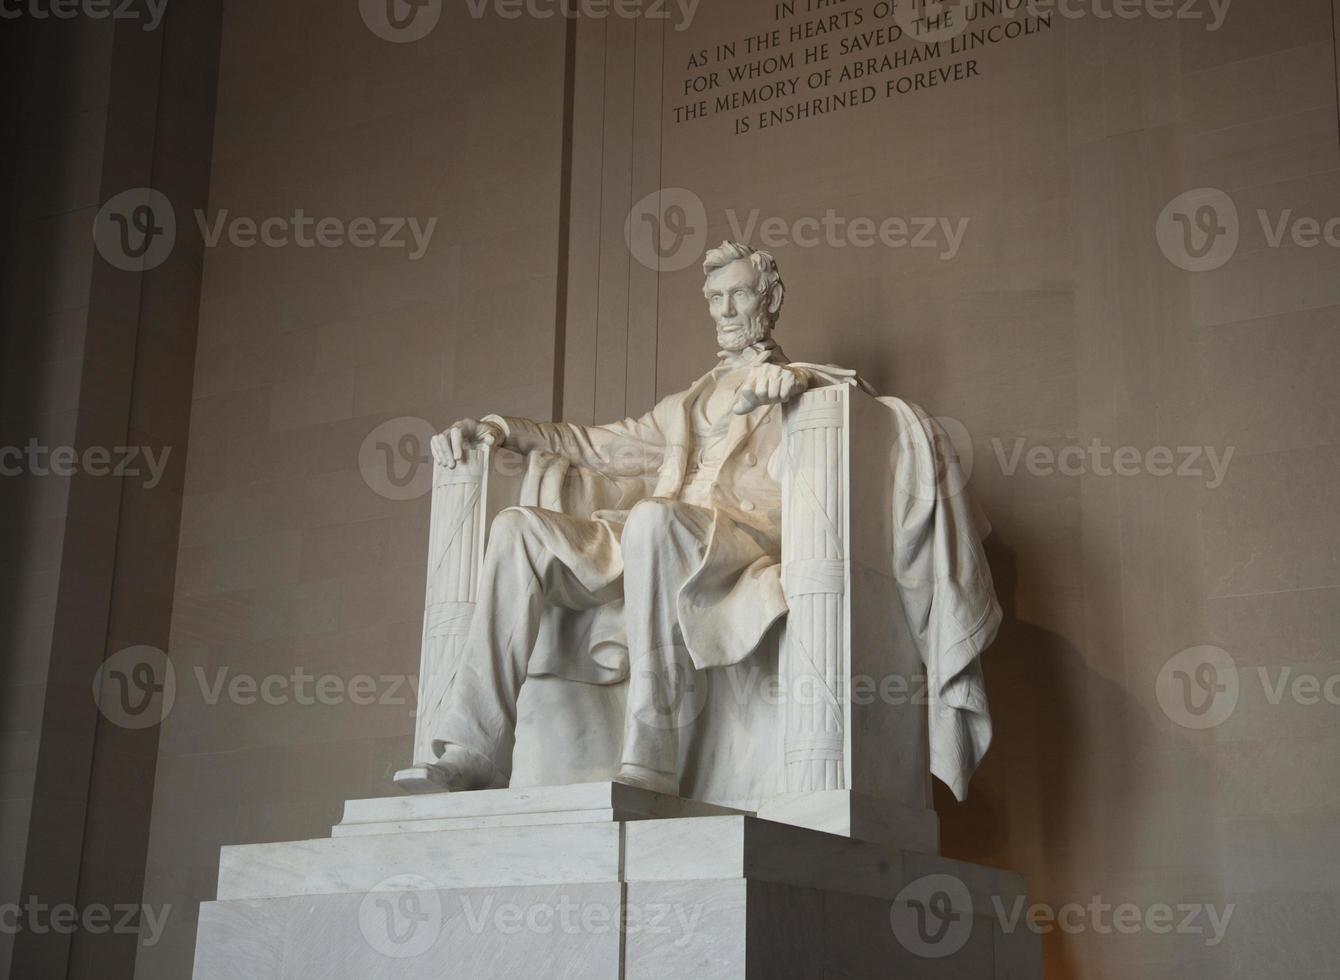 Statue of Abraham Lincoln at the memorial in his honor photo